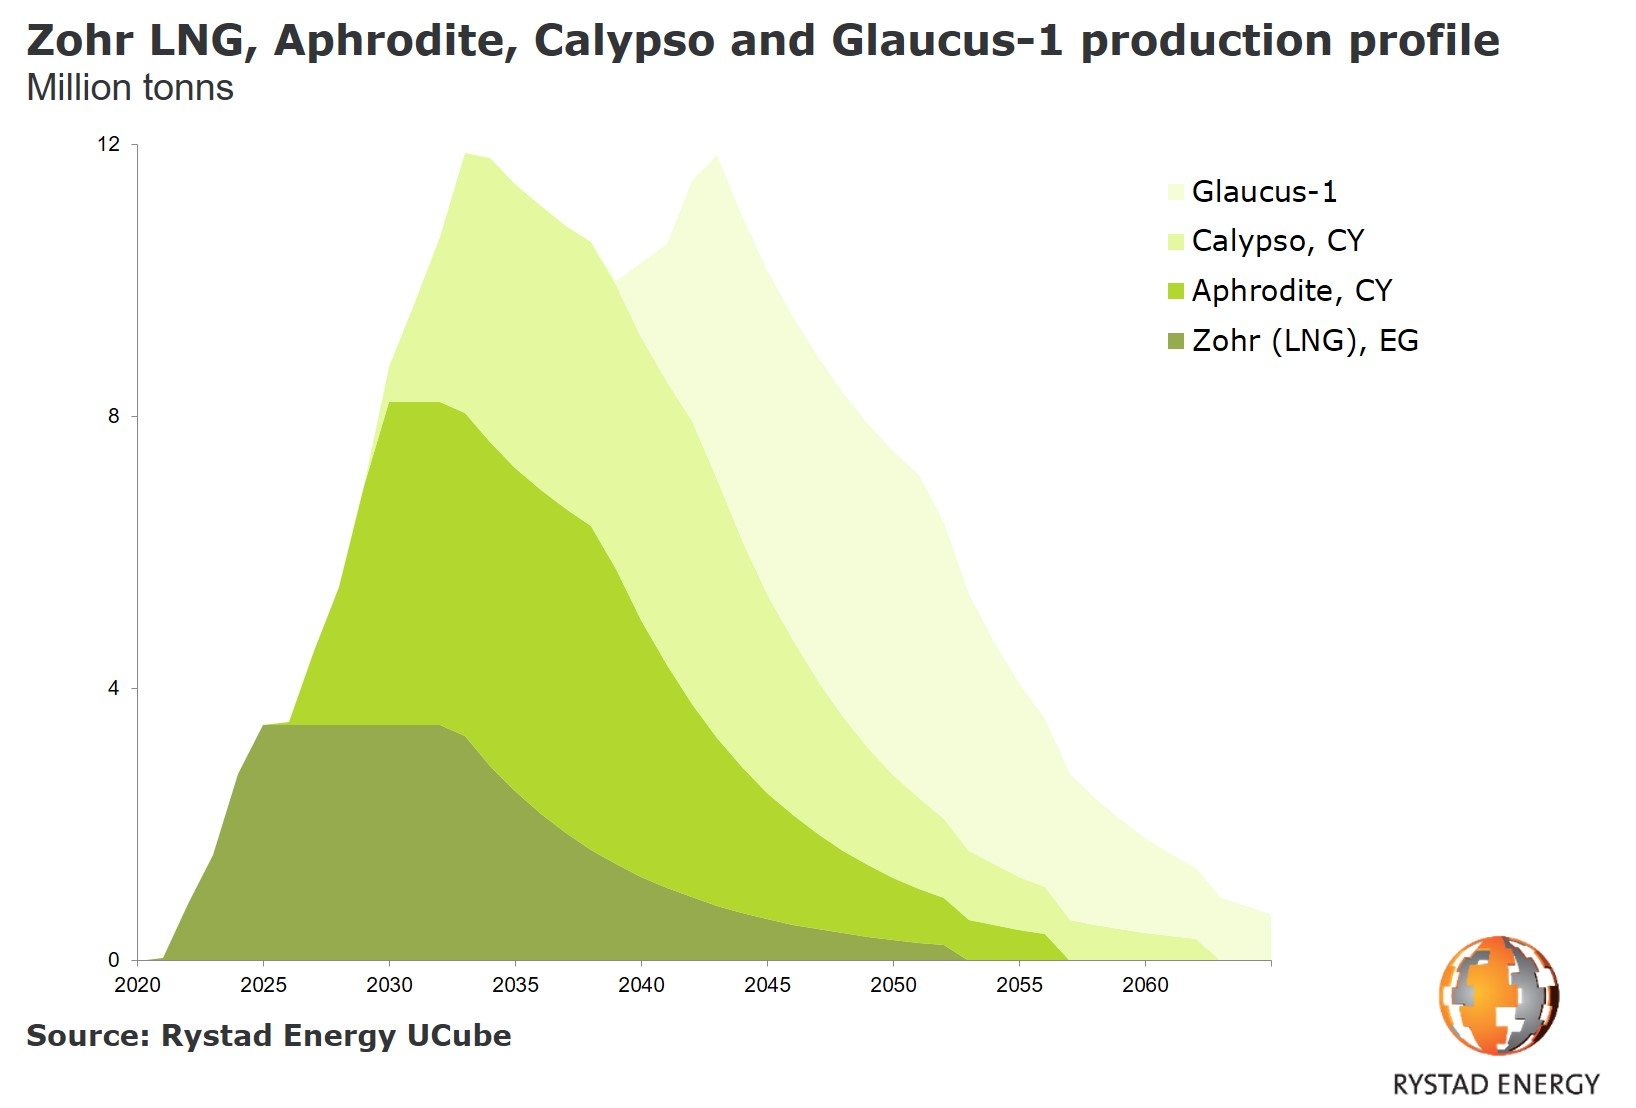 A chart showing Zohr LNG, Aphrodite, Calypso and Glaucus-1 production profile in Million tonns from 2020 to 2060. Source: Rystad Energy UCube